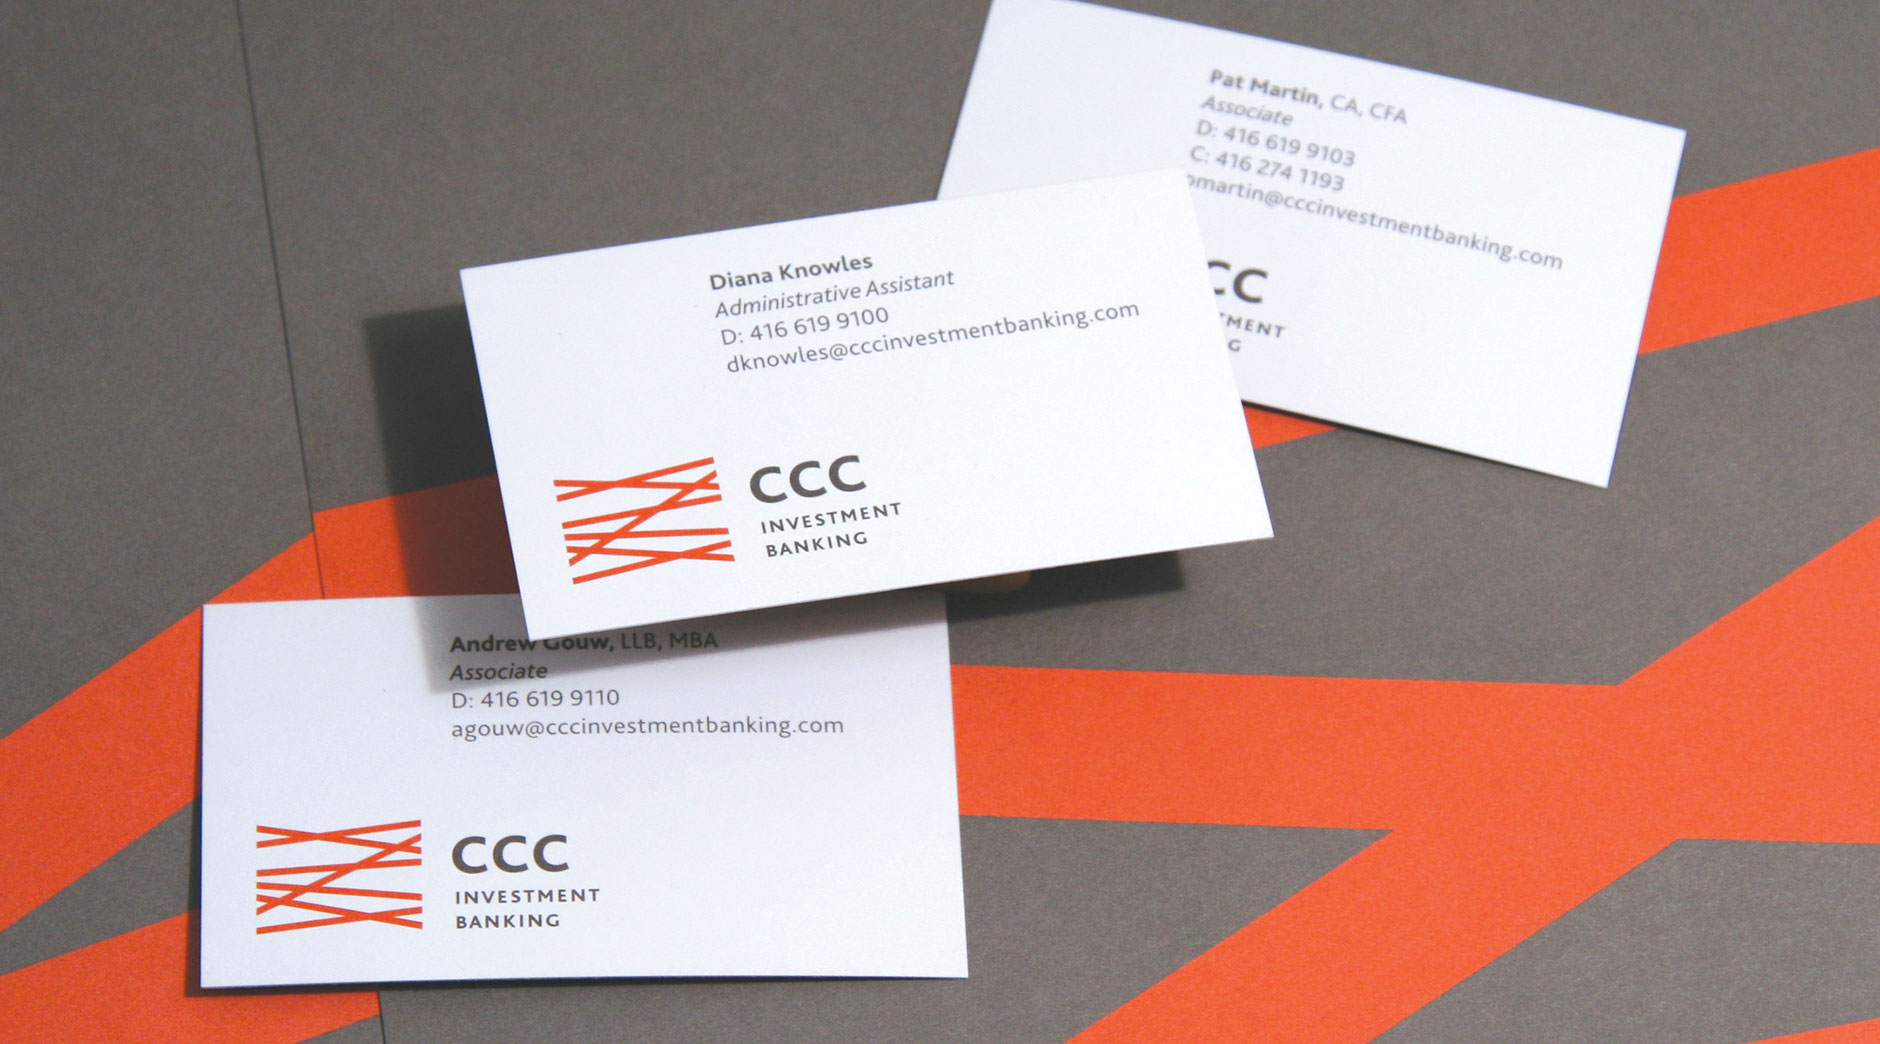 Amazing bank business card images business card ideas etadamfo ccc branding corporate communications and web design colourmoves Choice Image